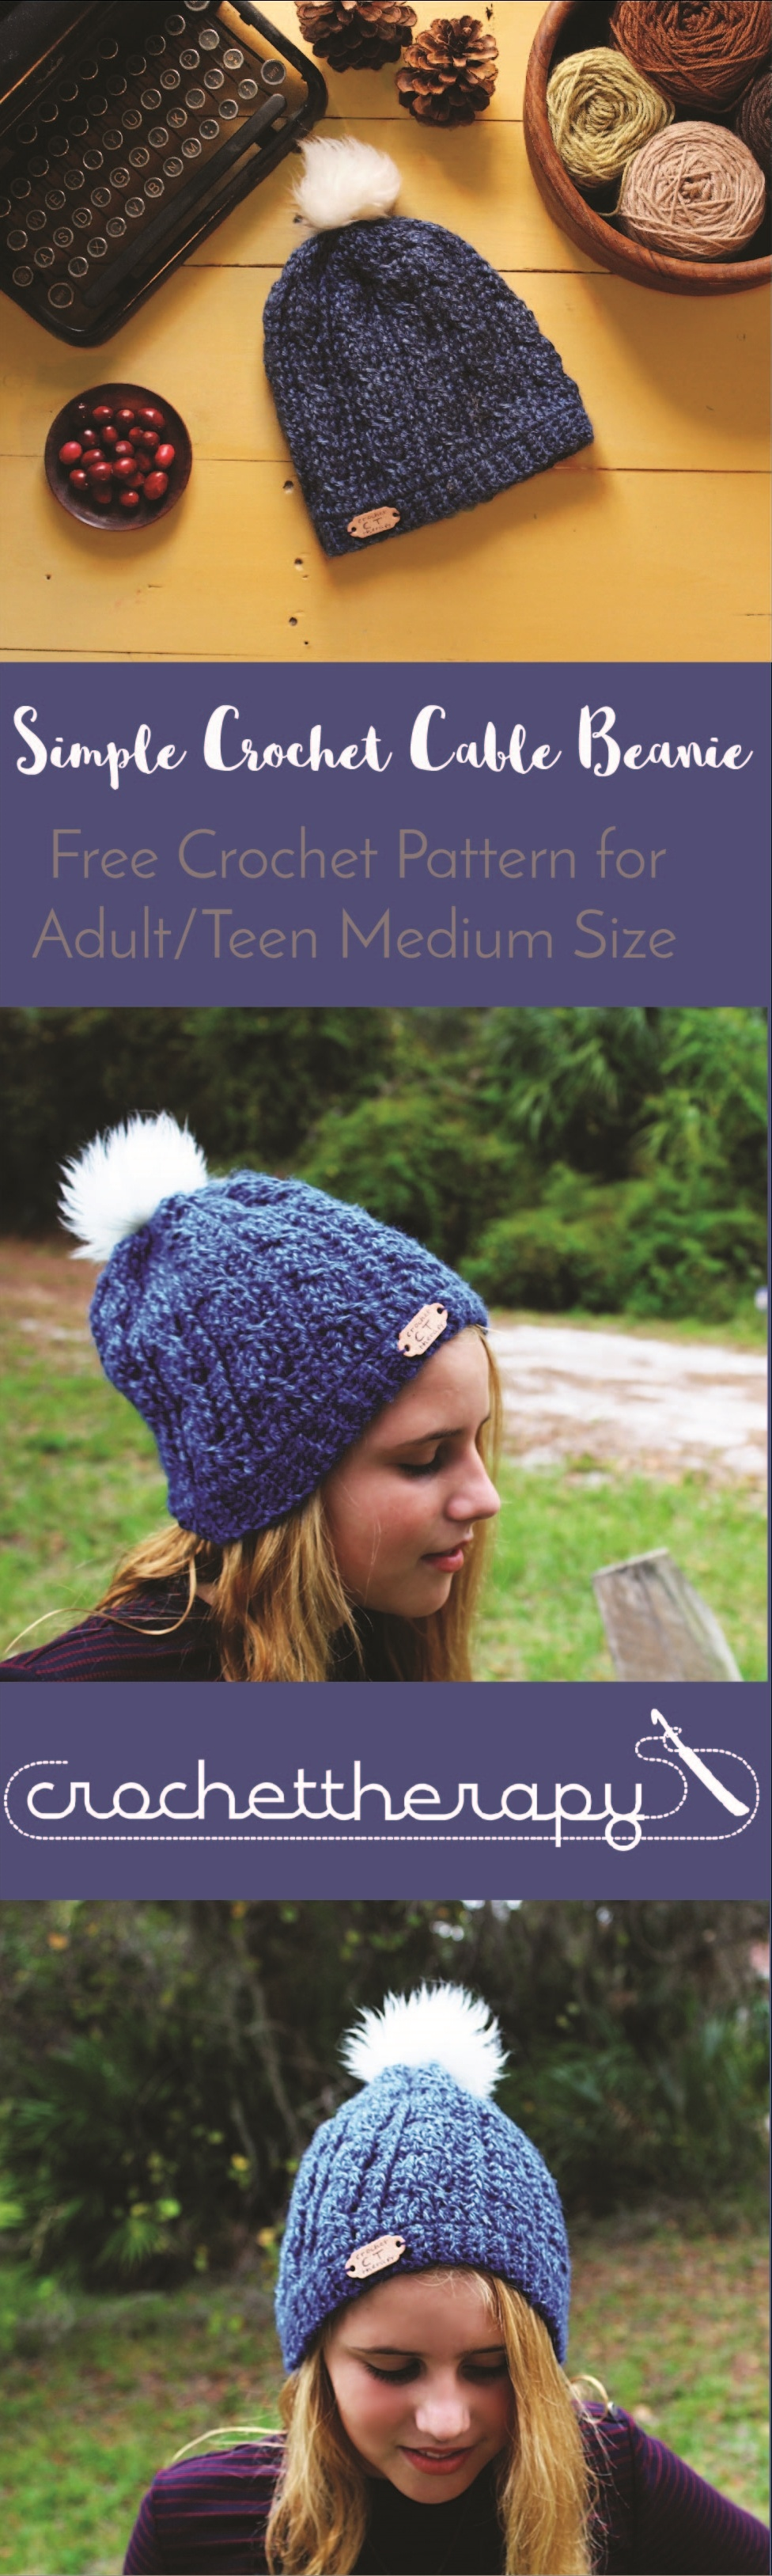 simple crochet cable beanie - free cable hat pattern